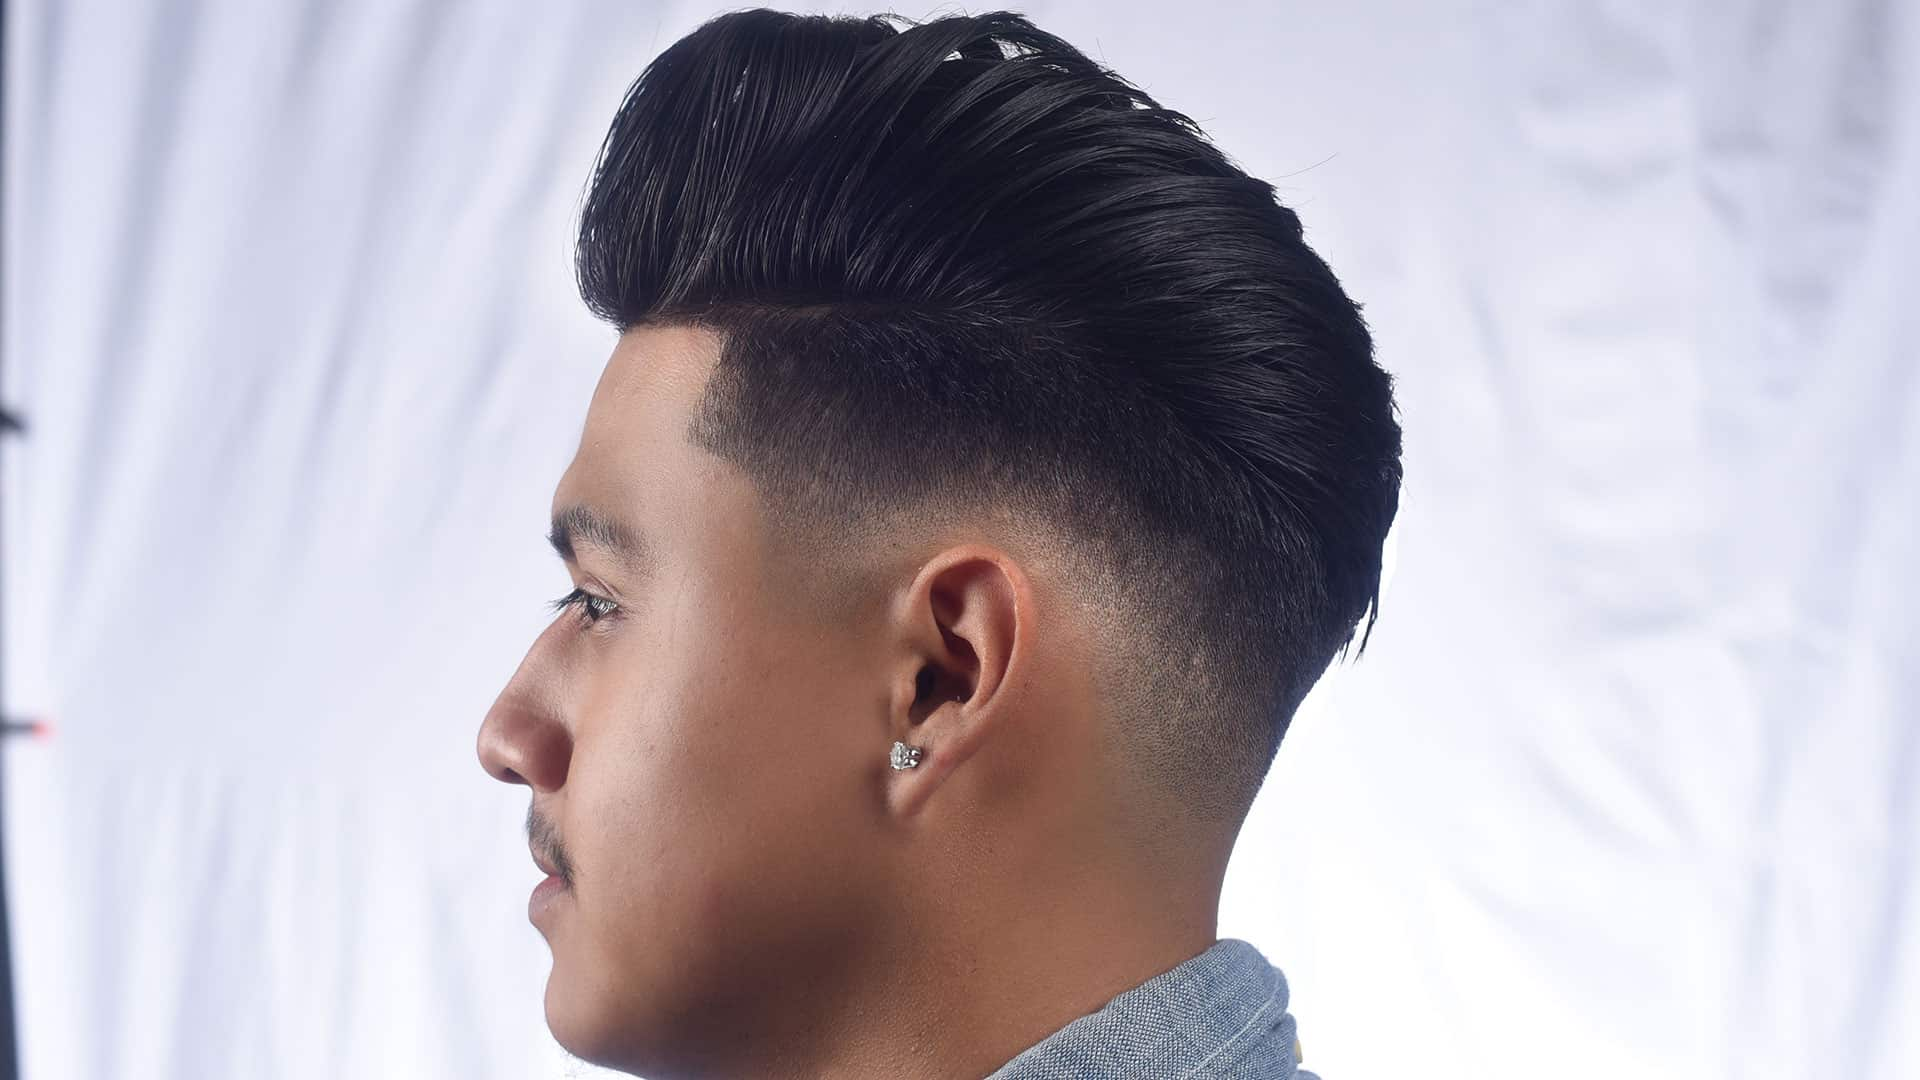 Hair Style For Guys: 55 Excellent Pompadour Fade Ideas